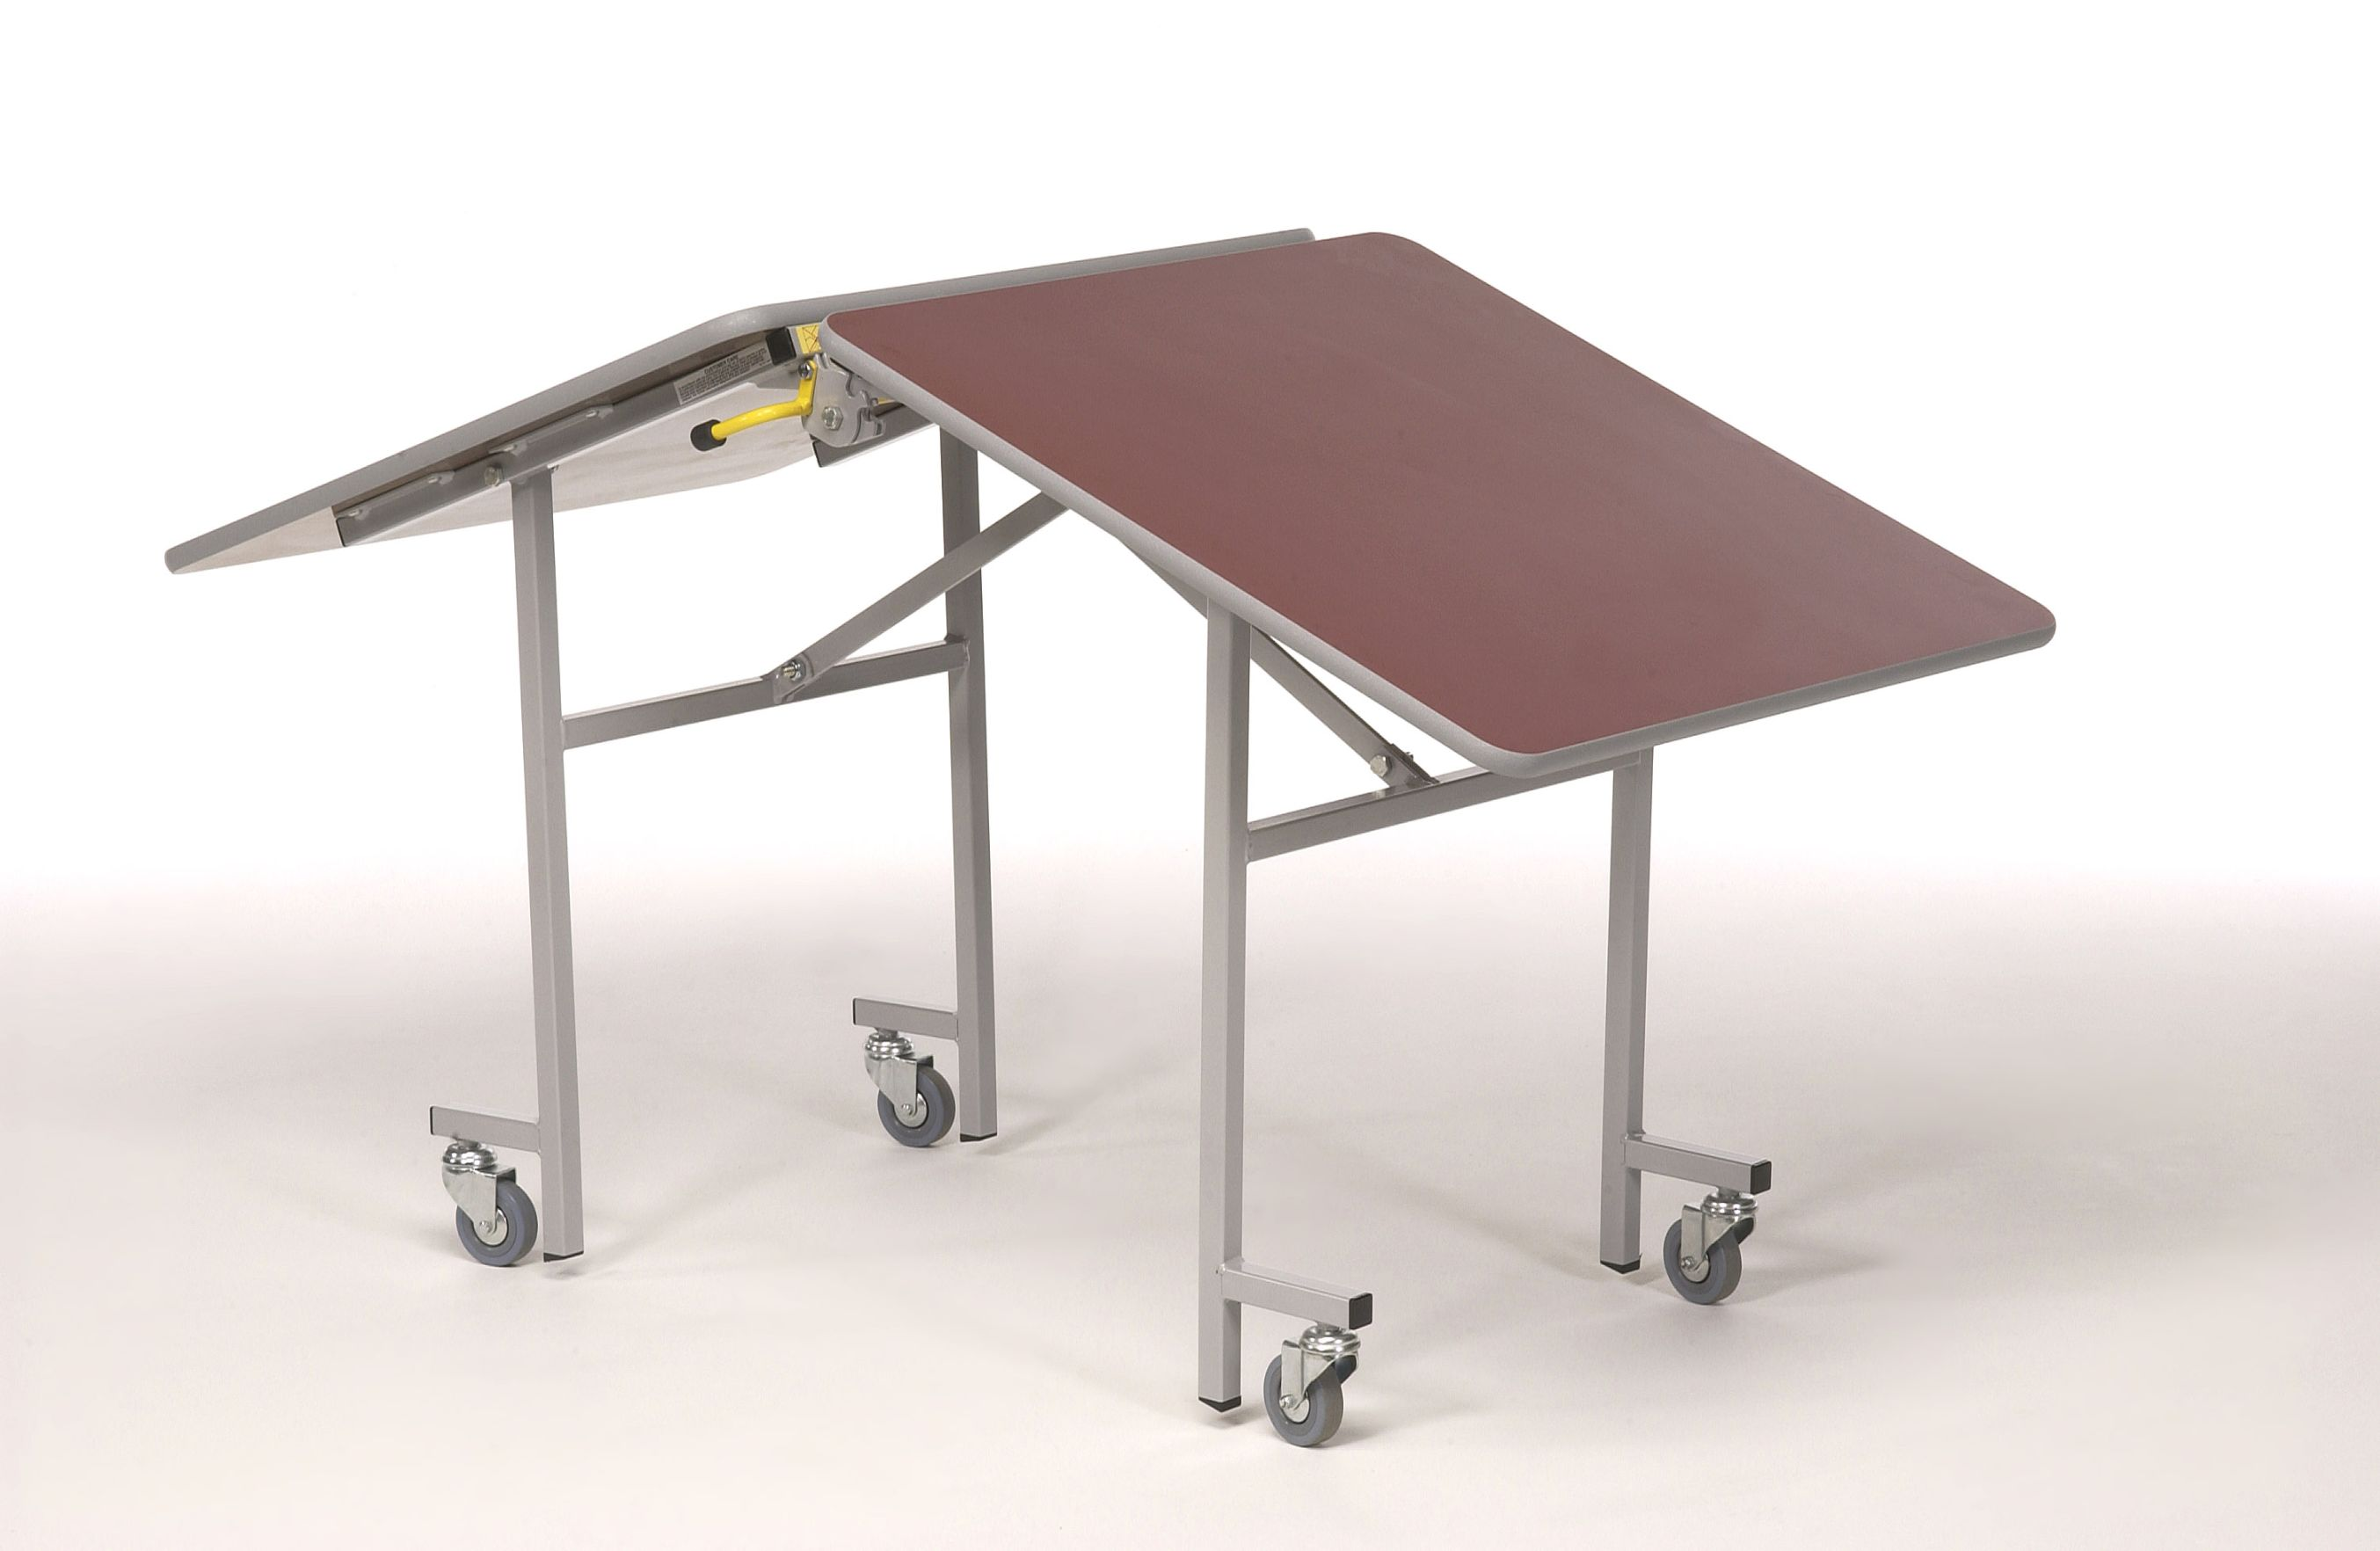 Importance of folding table with wheels in small living space